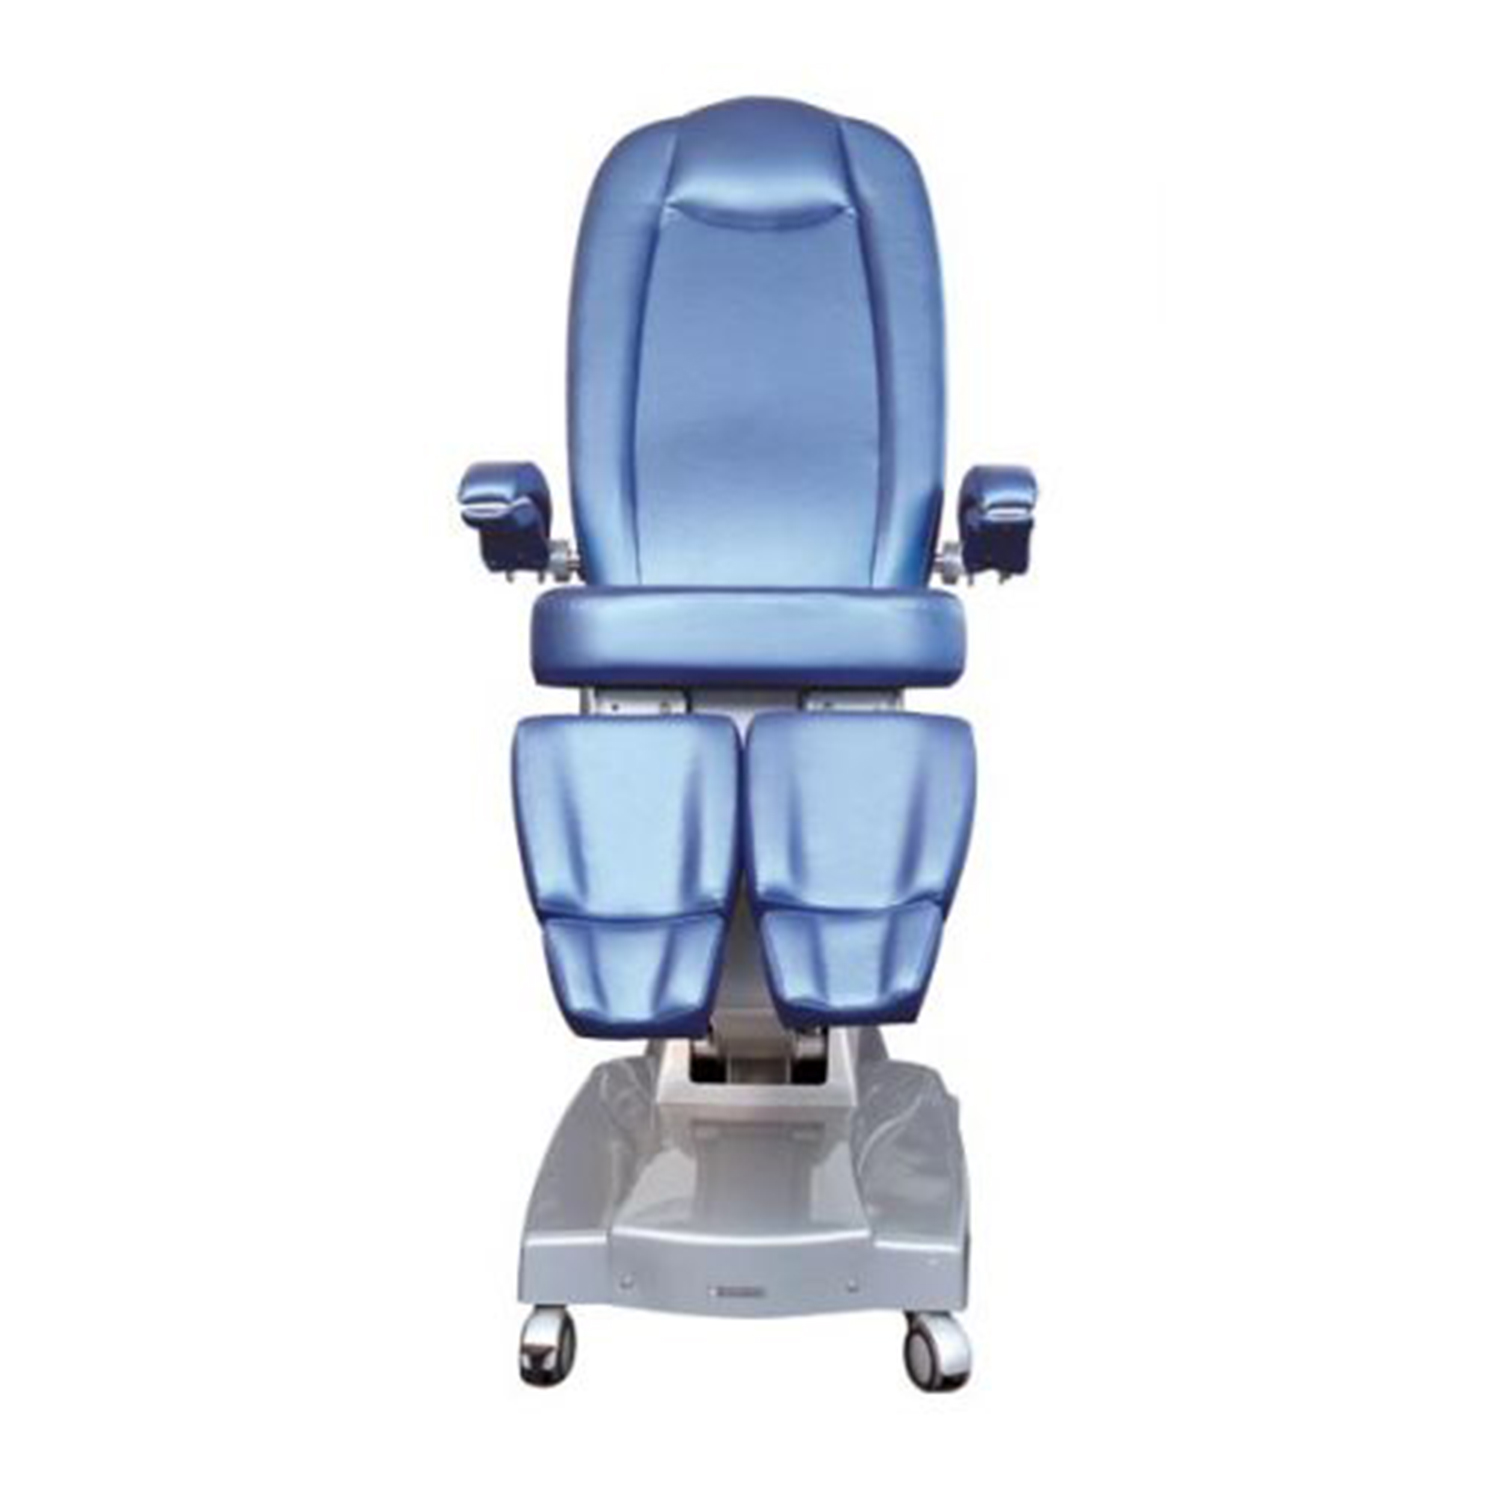 Euroclinic Mya Podiatry Chair